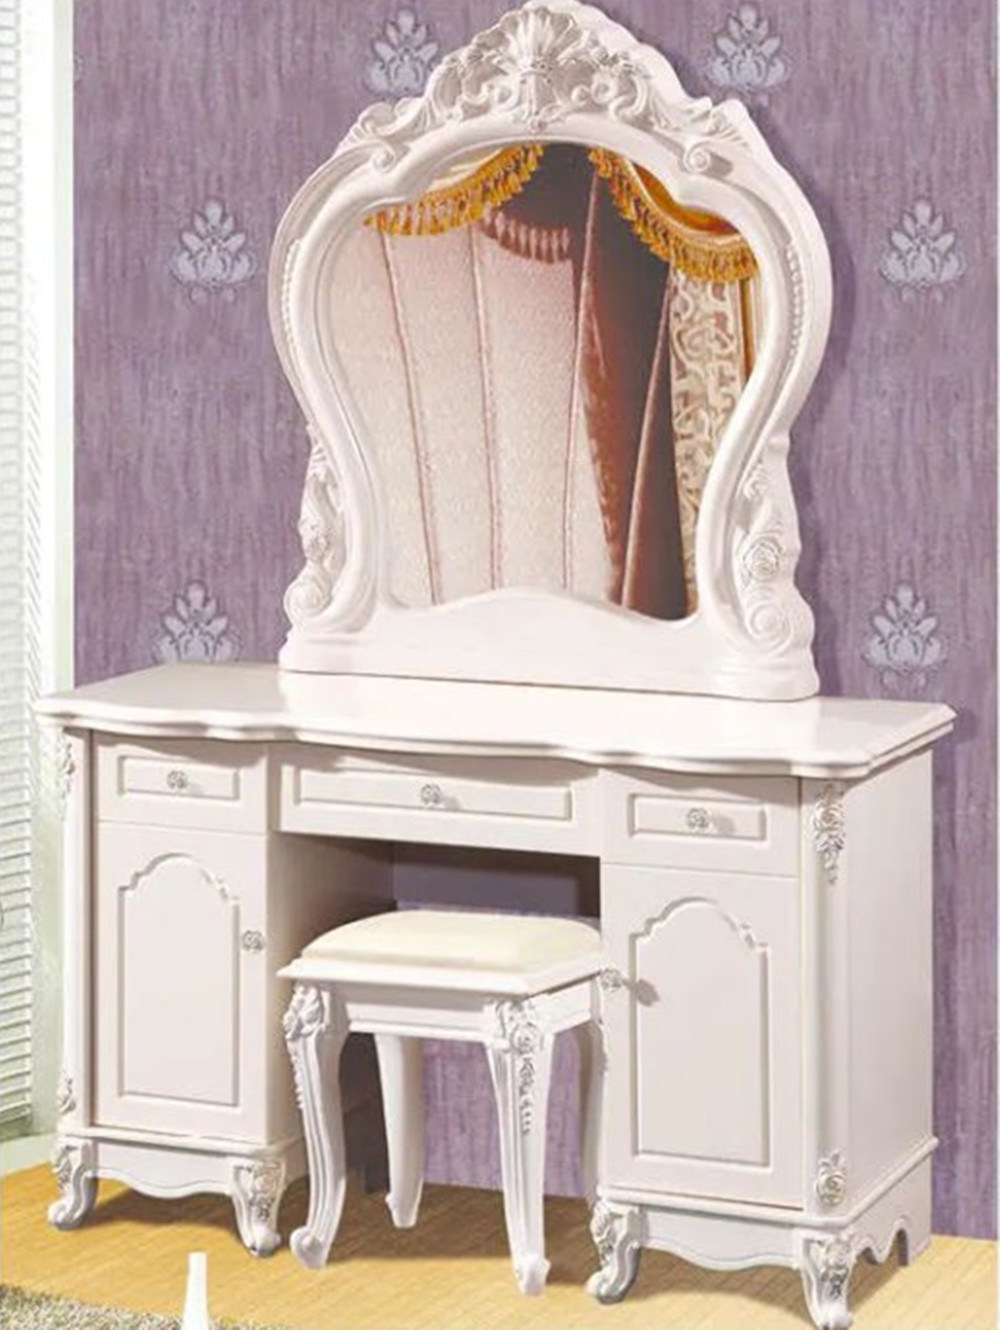 Wholesale Bedroom Furniture Makeup Vanity Table Modern Dresser With Mirror China Home Furniture Dressing Table Made In China Com